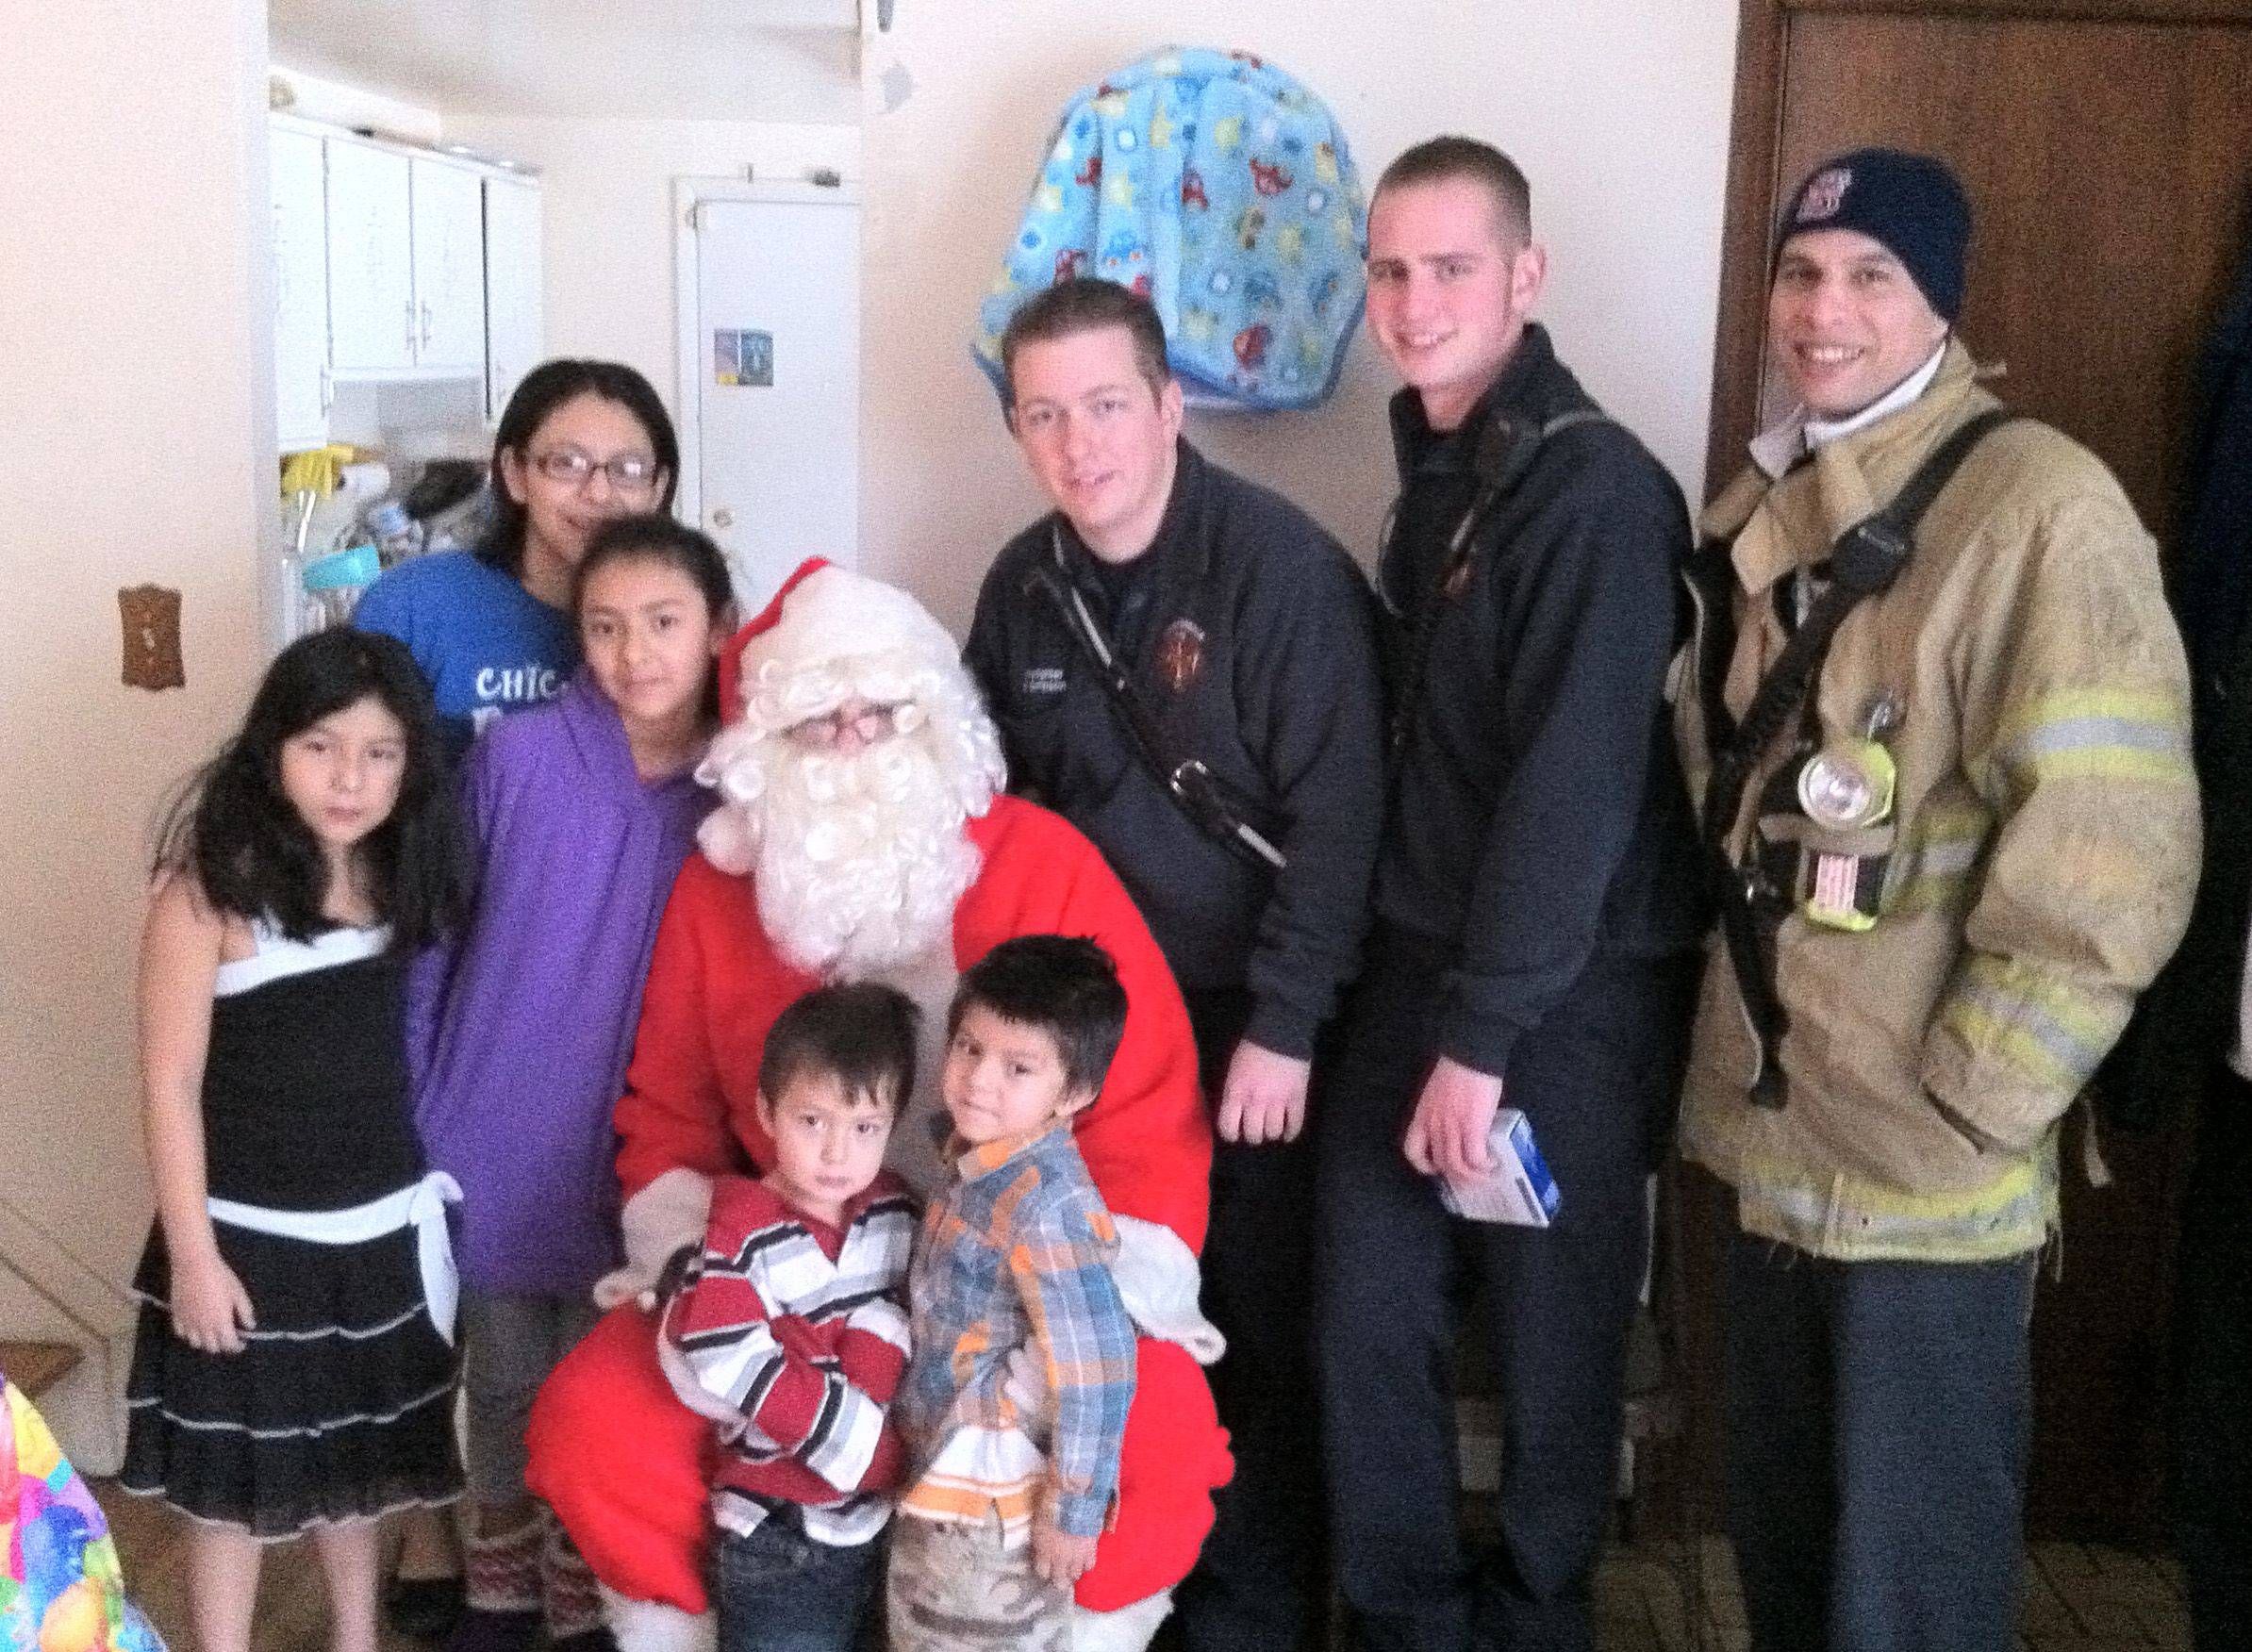 Photo courtesy of Carpentersville Firefighters Local 4790Carpentersville firefighters get a hand from Santa Claus while handing out gifts . Firefighters, from left, are Brian Simpson, Ben Foltin and Chris Bolliger.